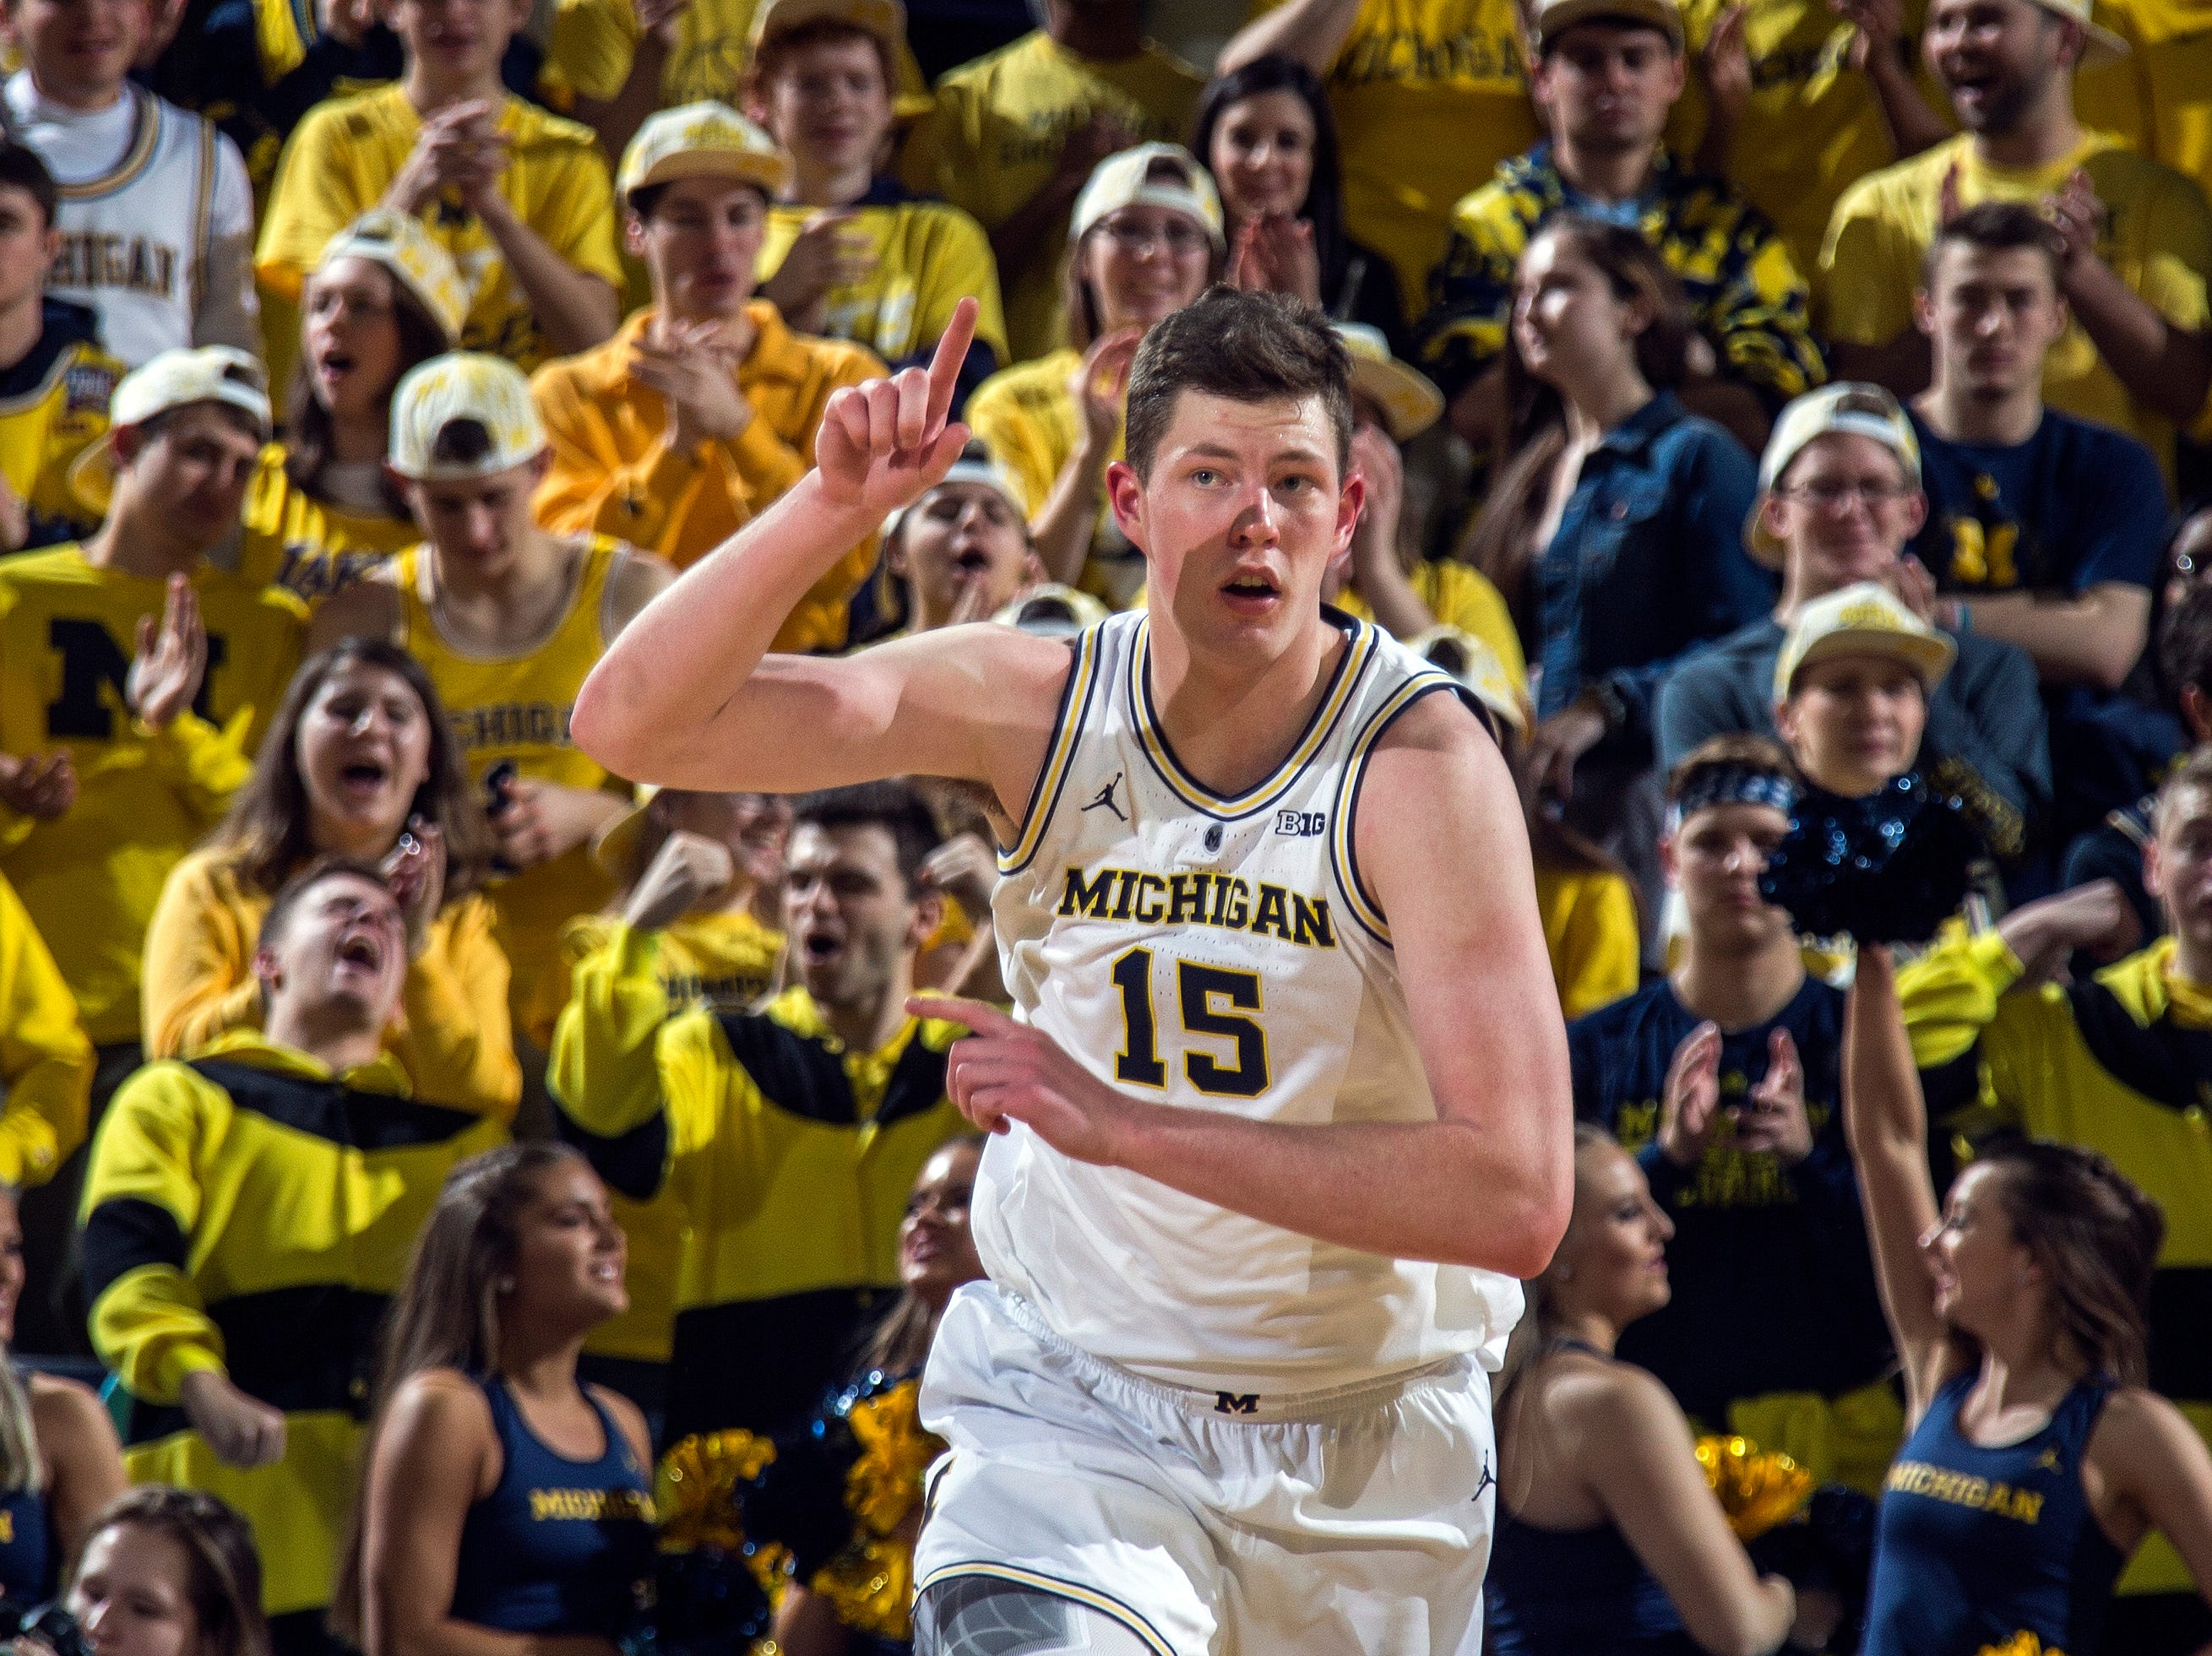 Michigan center Jon Teske (15) reacts after making a basket in the first half of an NCAA college basketball game against Northwestern at Crisler Center in Ann Arbor, Mich., Sunday, Jan. 13, 2019. (AP Photo/Tony Ding)